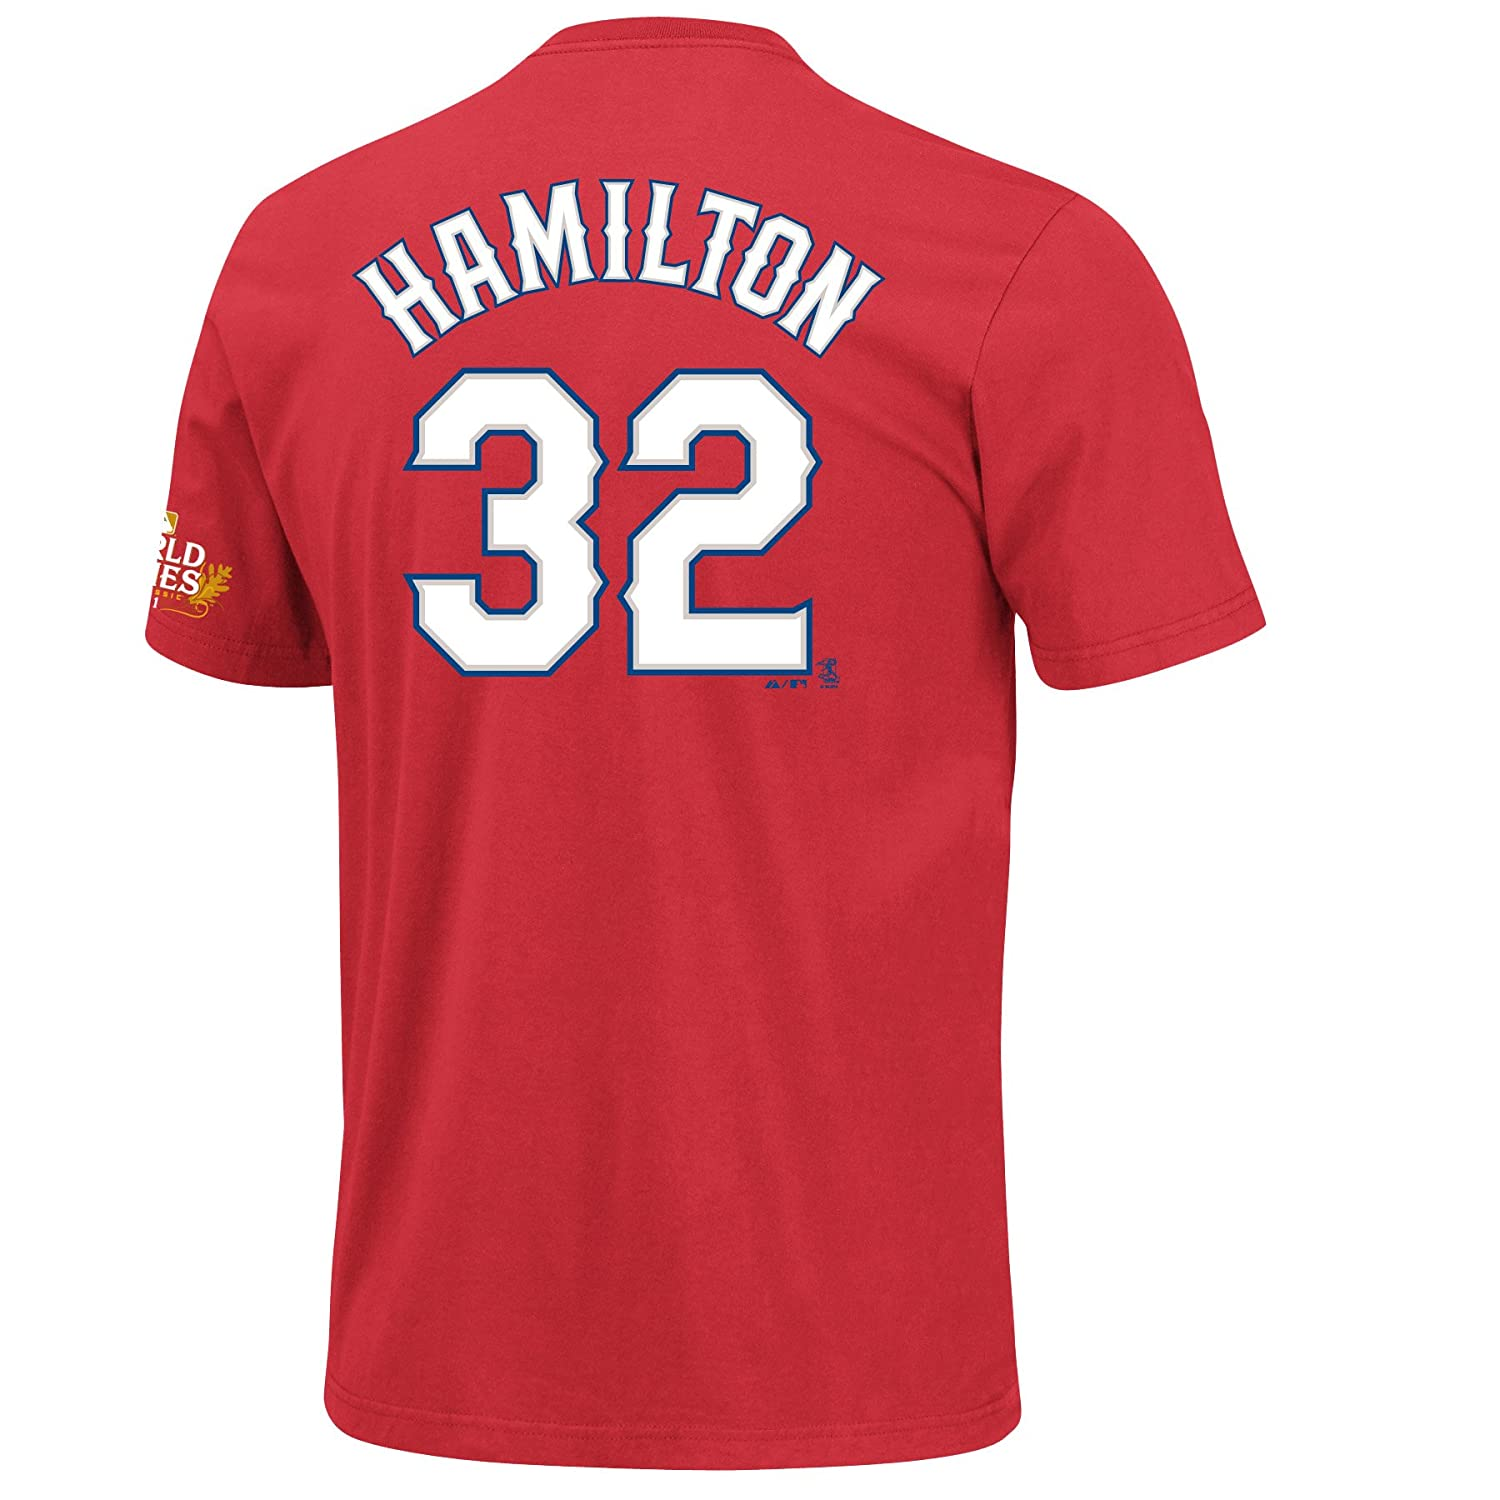 new arrival 935d4 5bf1d Amazon.com : MLB Boys' Texas Rangers Josh Hamilton 2011 ...